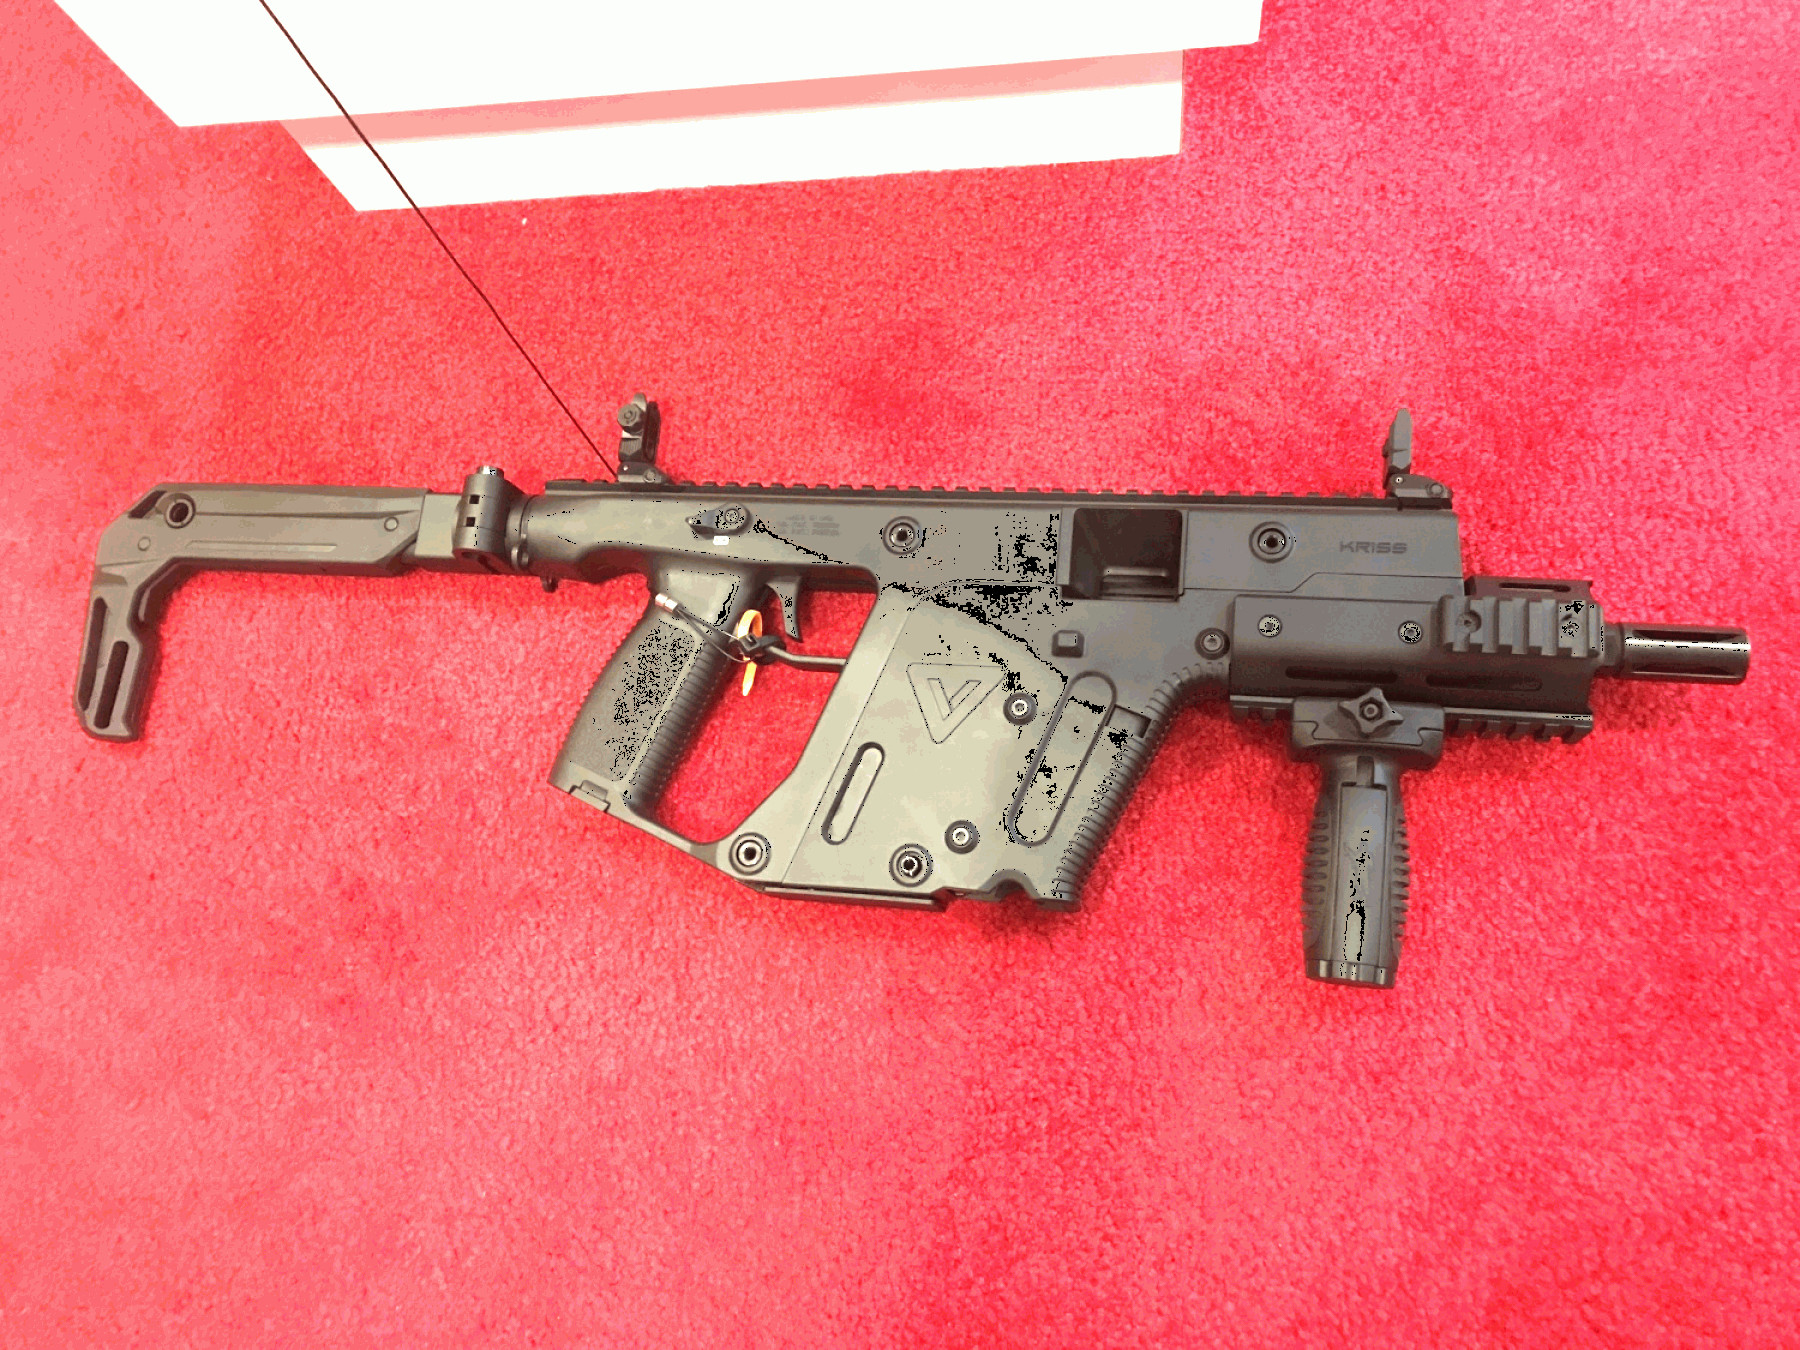 Kriss Vector Gen 1 Rail: Shot Kriss Usas Latest Products For